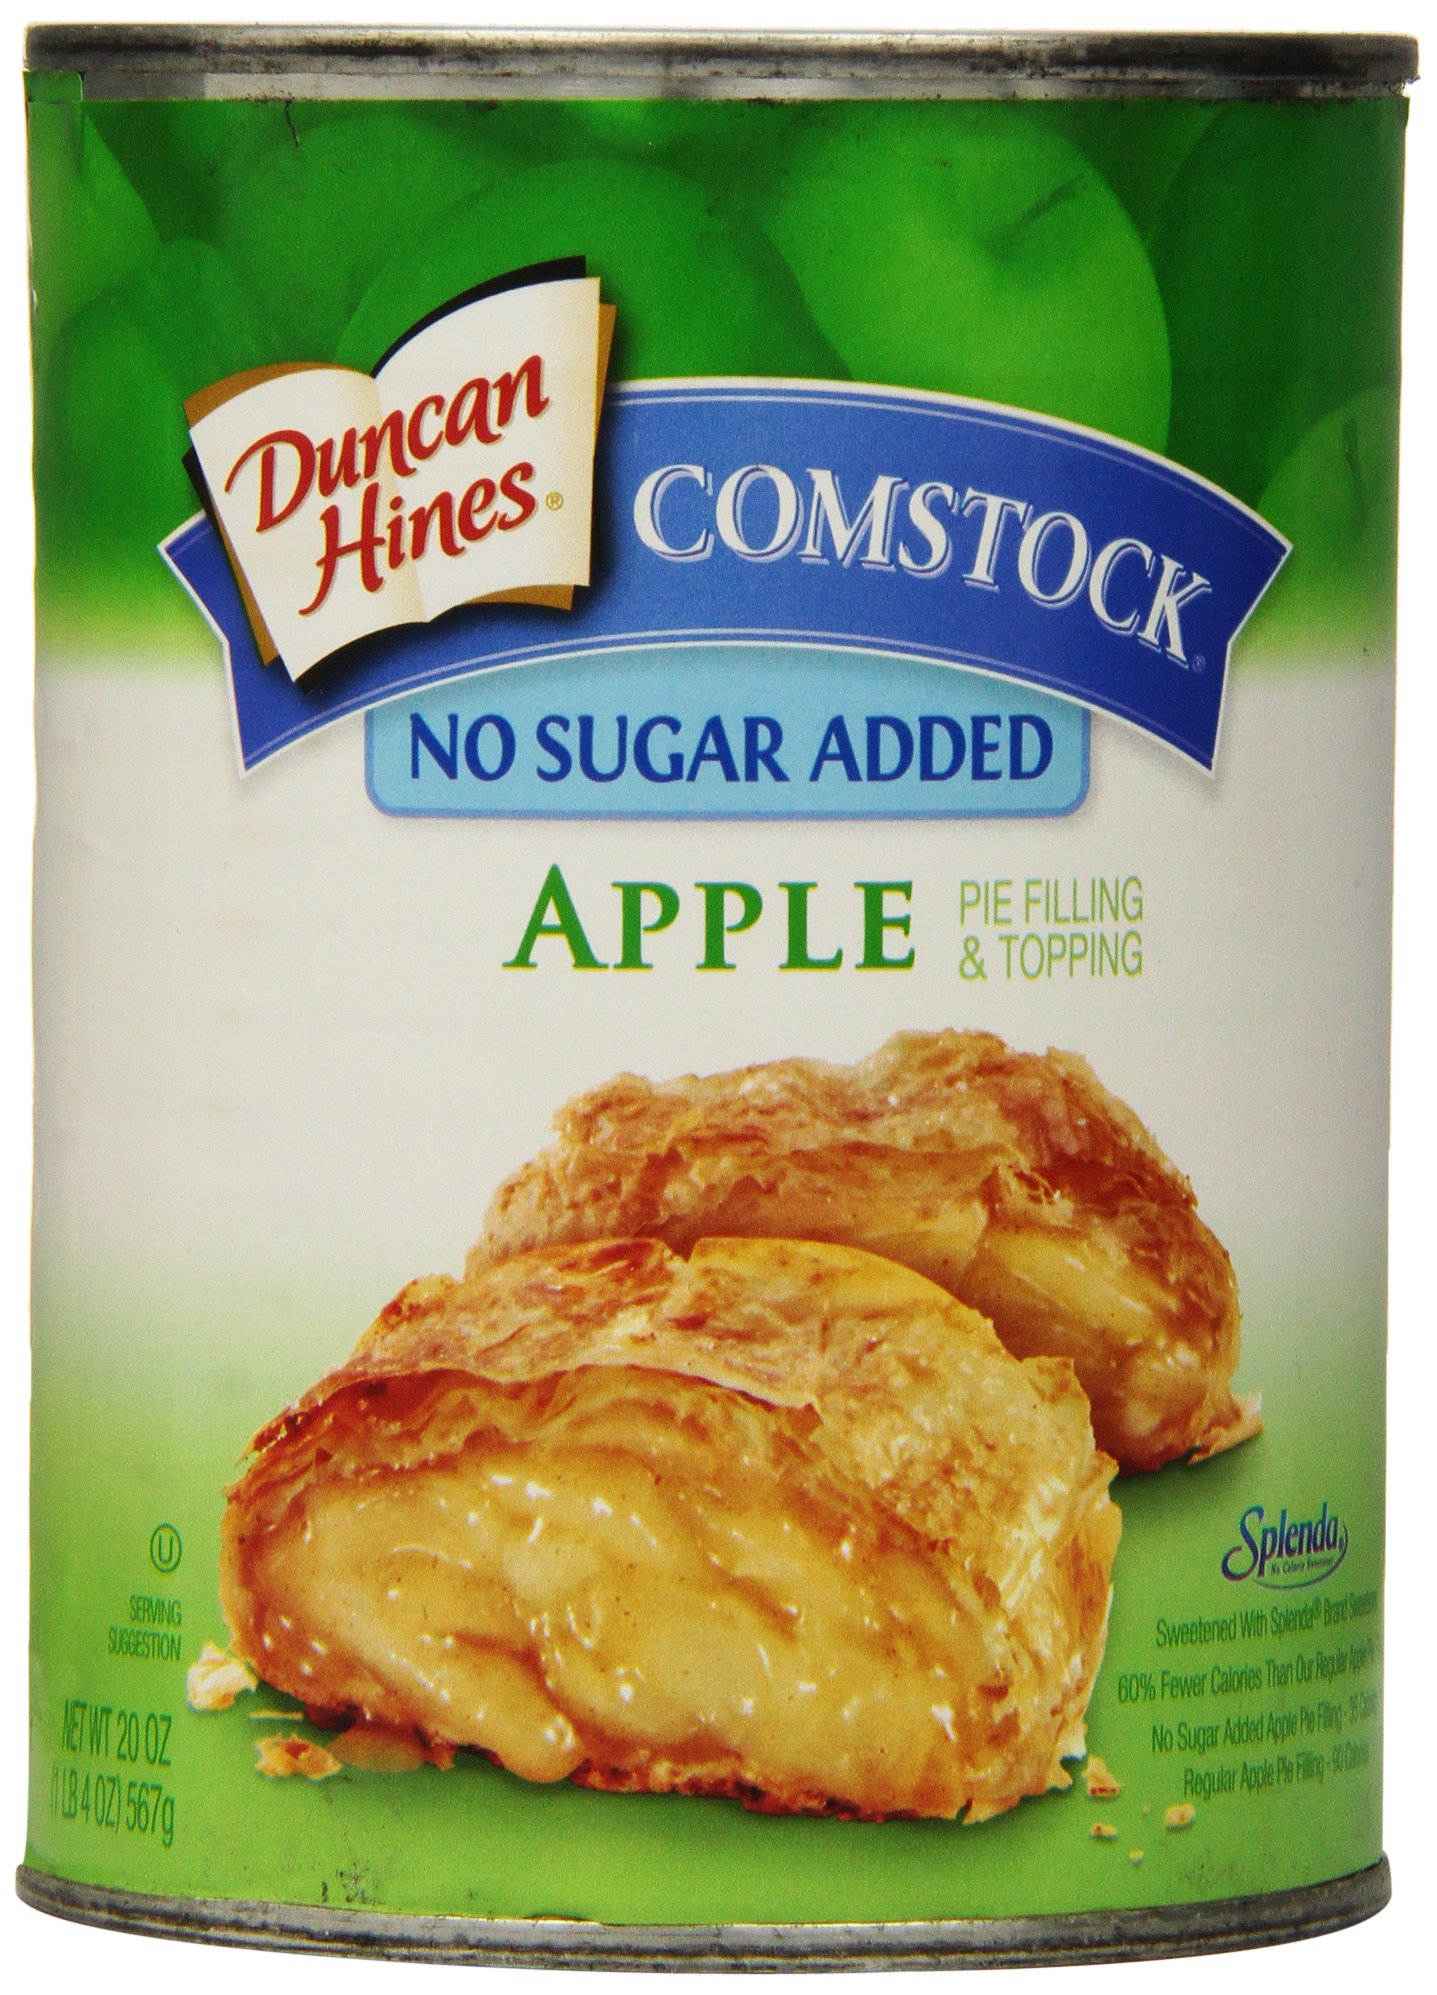 Comstock No Sugar Added Pie Filling & Topping, Apple, 20 Ounce (Pack of 12)